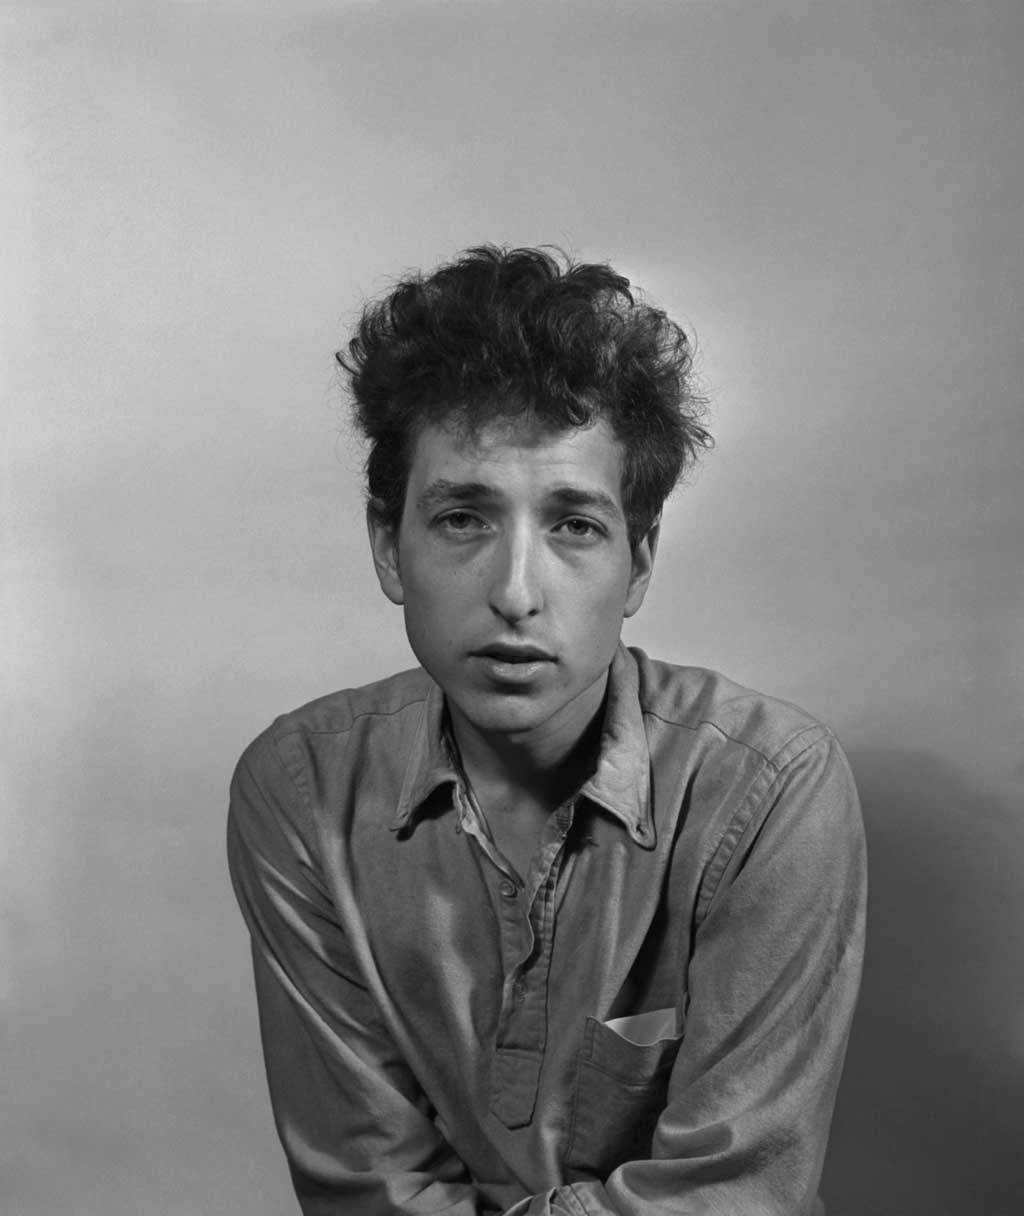 "Bob Dylan in New York, 1963. In a rare interview, the Nobel Prize winner discusses mortality, drawing inspiration from the past, and his new album: ""Rough and Rowdy Ways."" (William C. Eckenberg/The New York Times)"